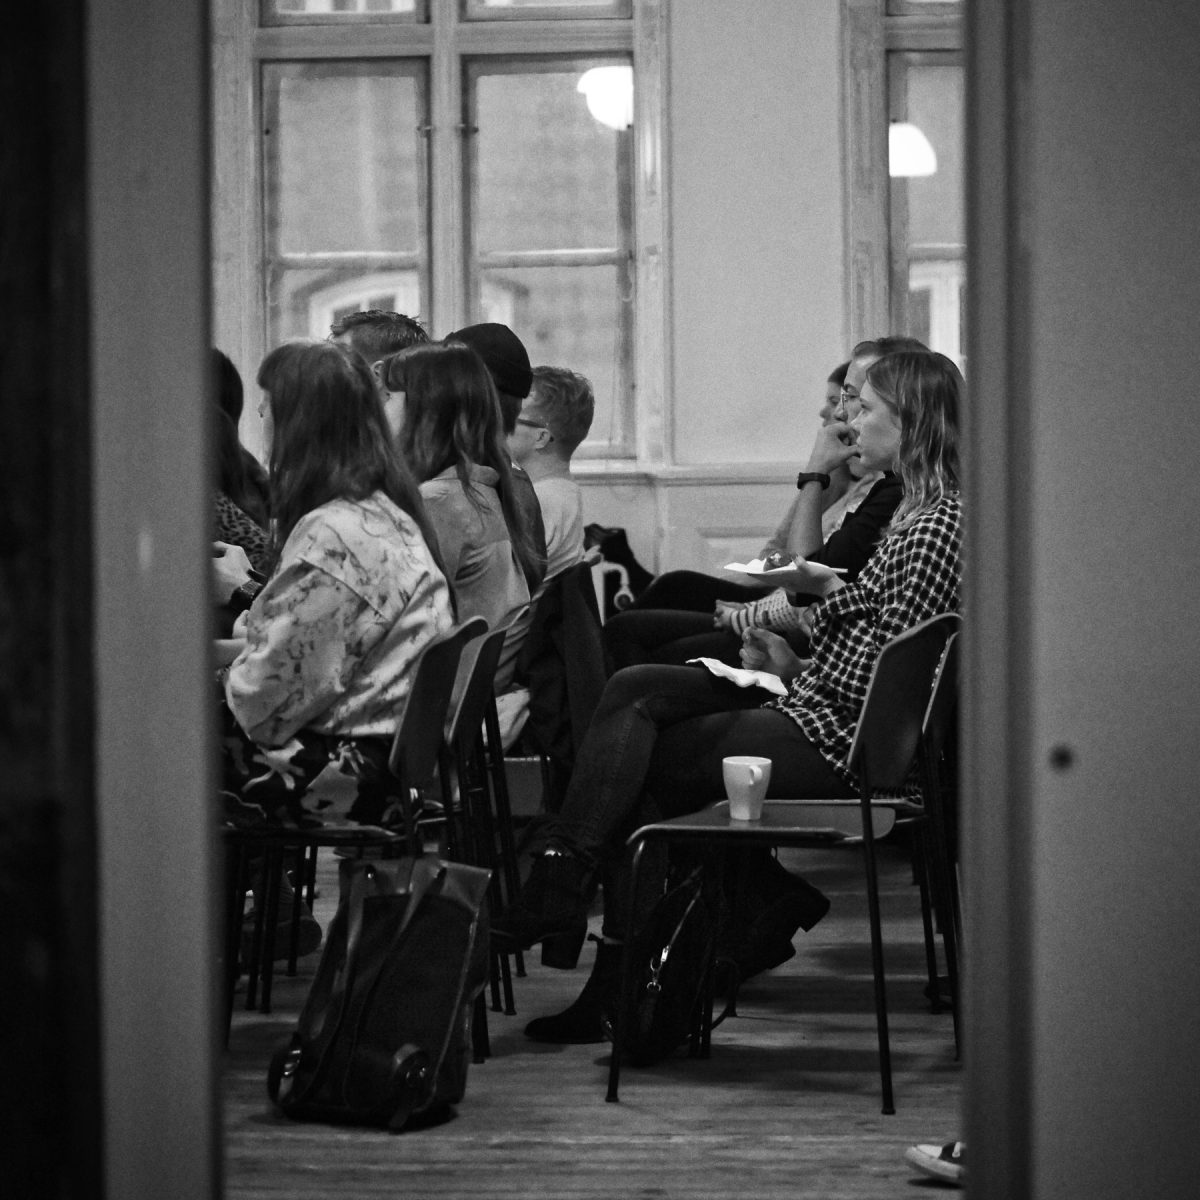 Event photography: Creative Mornings Sep 19 - nice audience